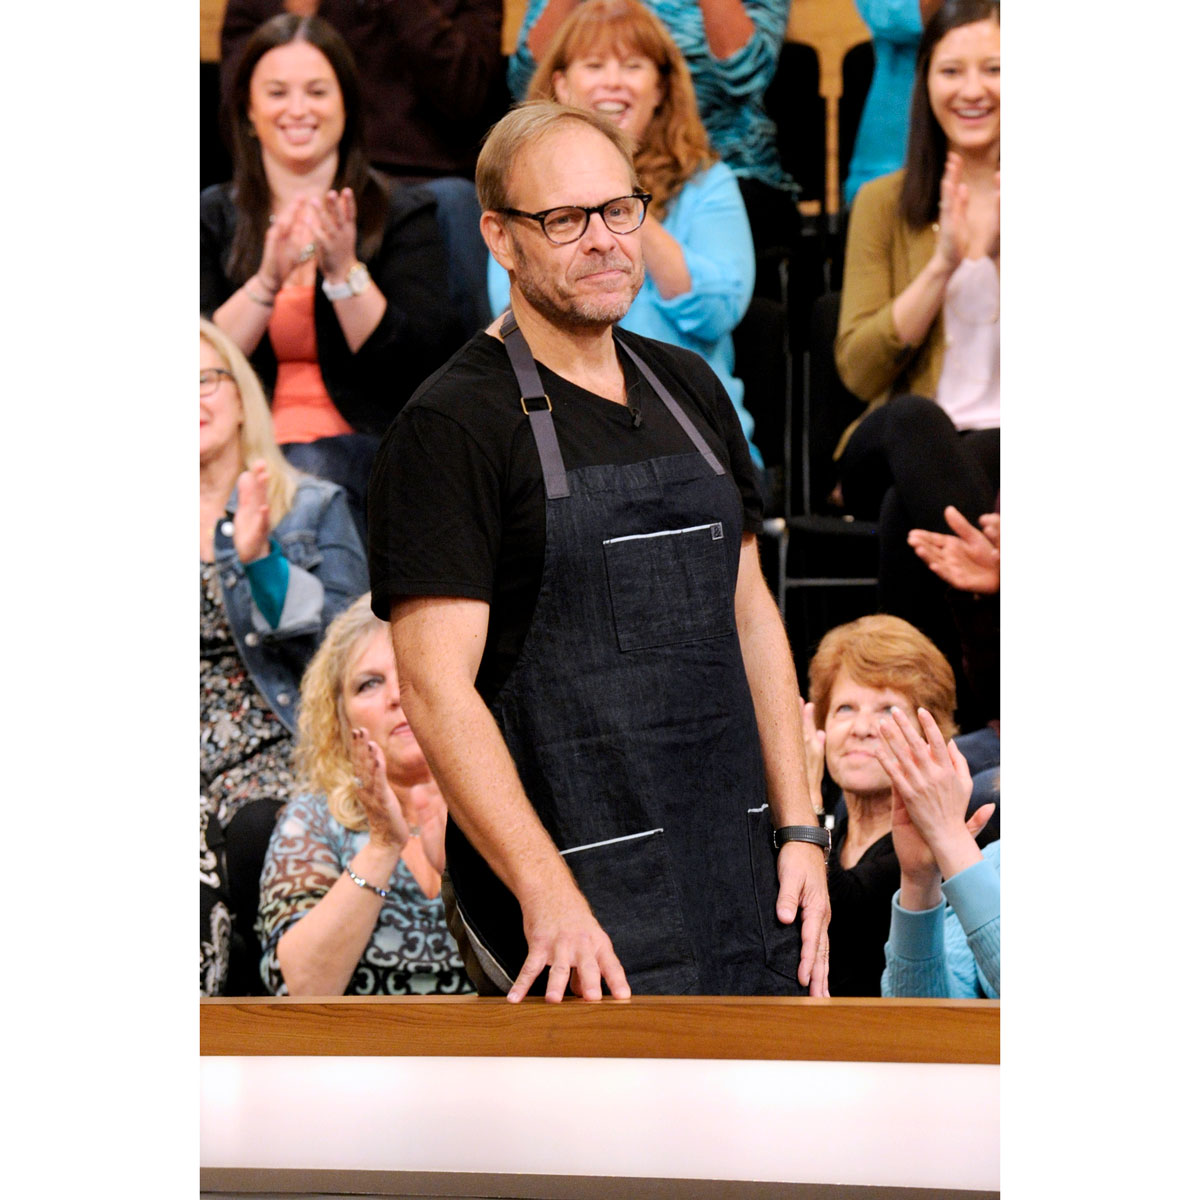 Food TV to Watch in 2018: Gordon Ramsay, Alton Brown | The Feast